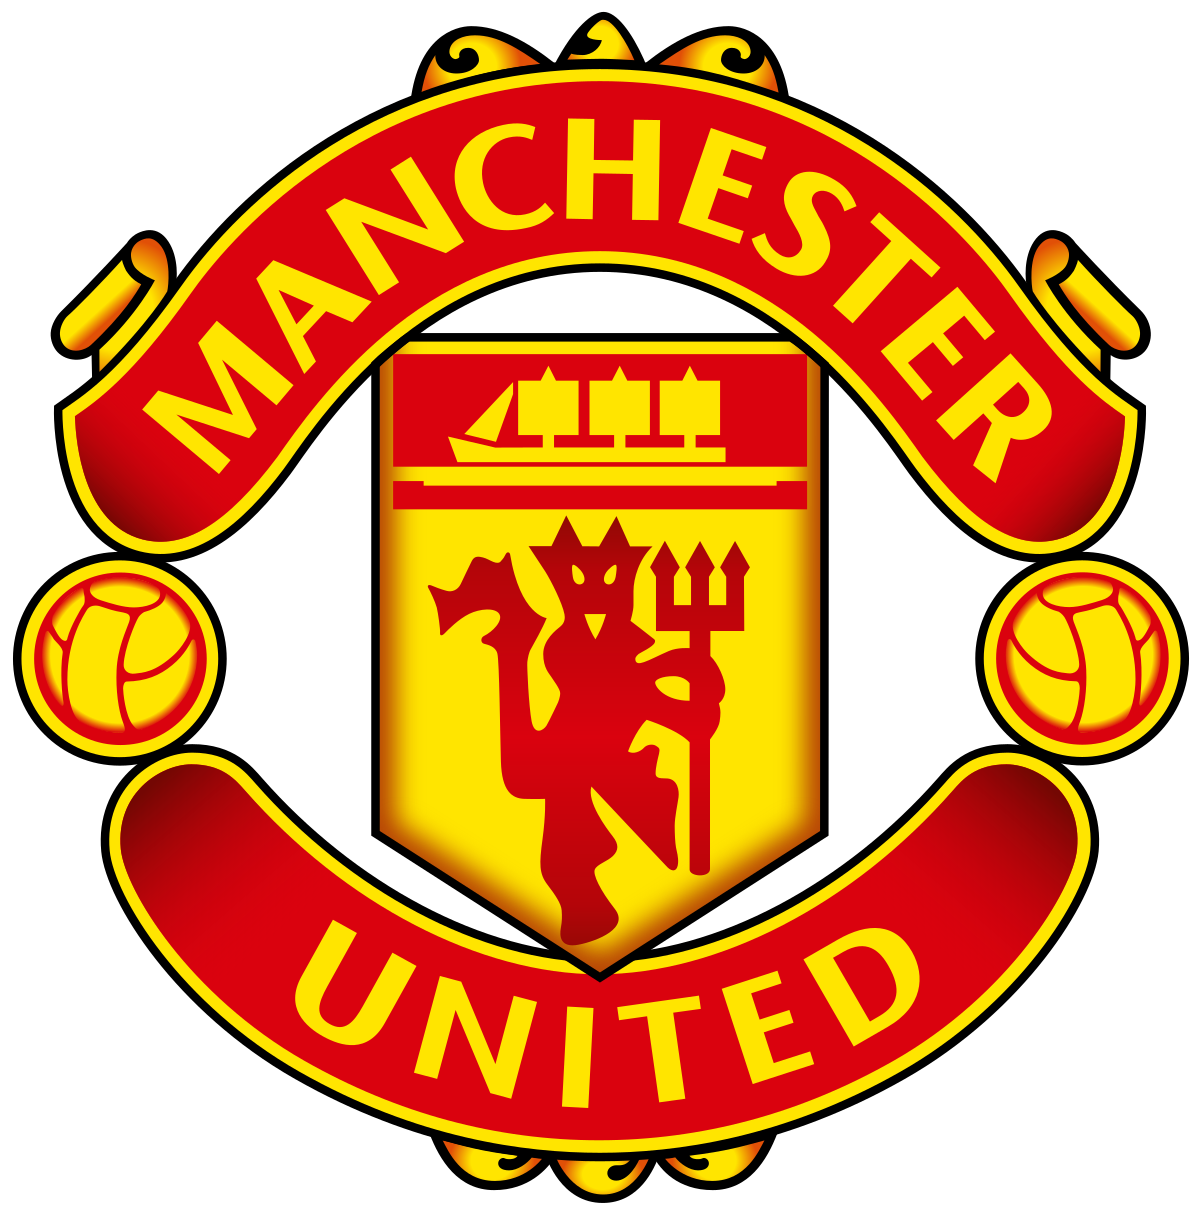 Football stadium crowd clipart svg royalty free download Manchester United F.C. - Wikipedia svg royalty free download